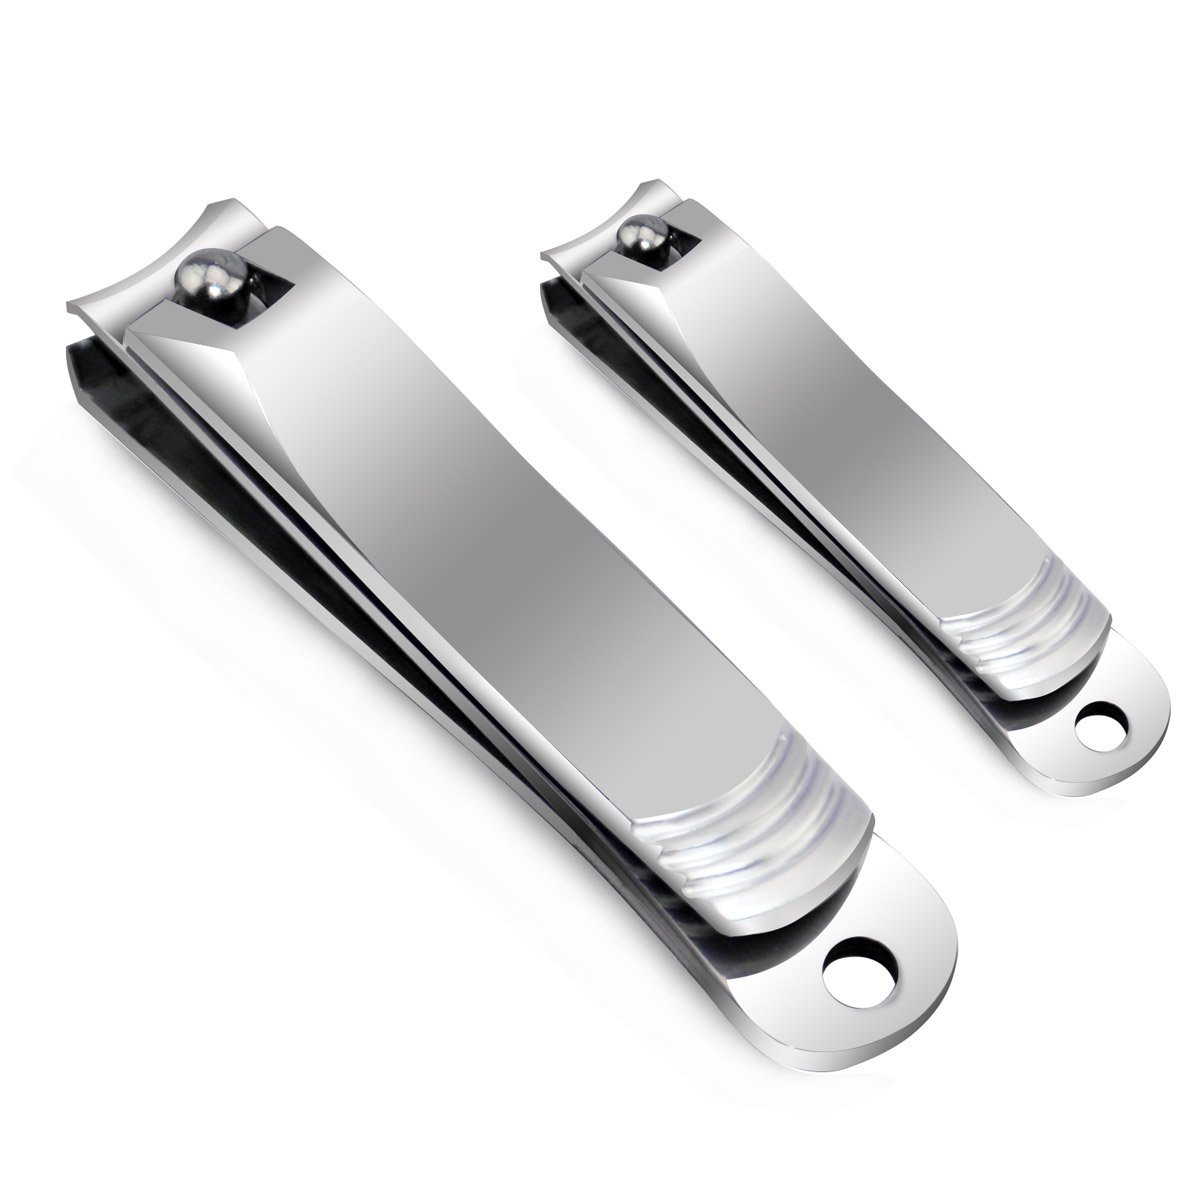 Nail Clippers Set - Chicone Stainless Steel Fingernail and Toenail Nail Cutter and Trimmer for Men Women with Gift Box